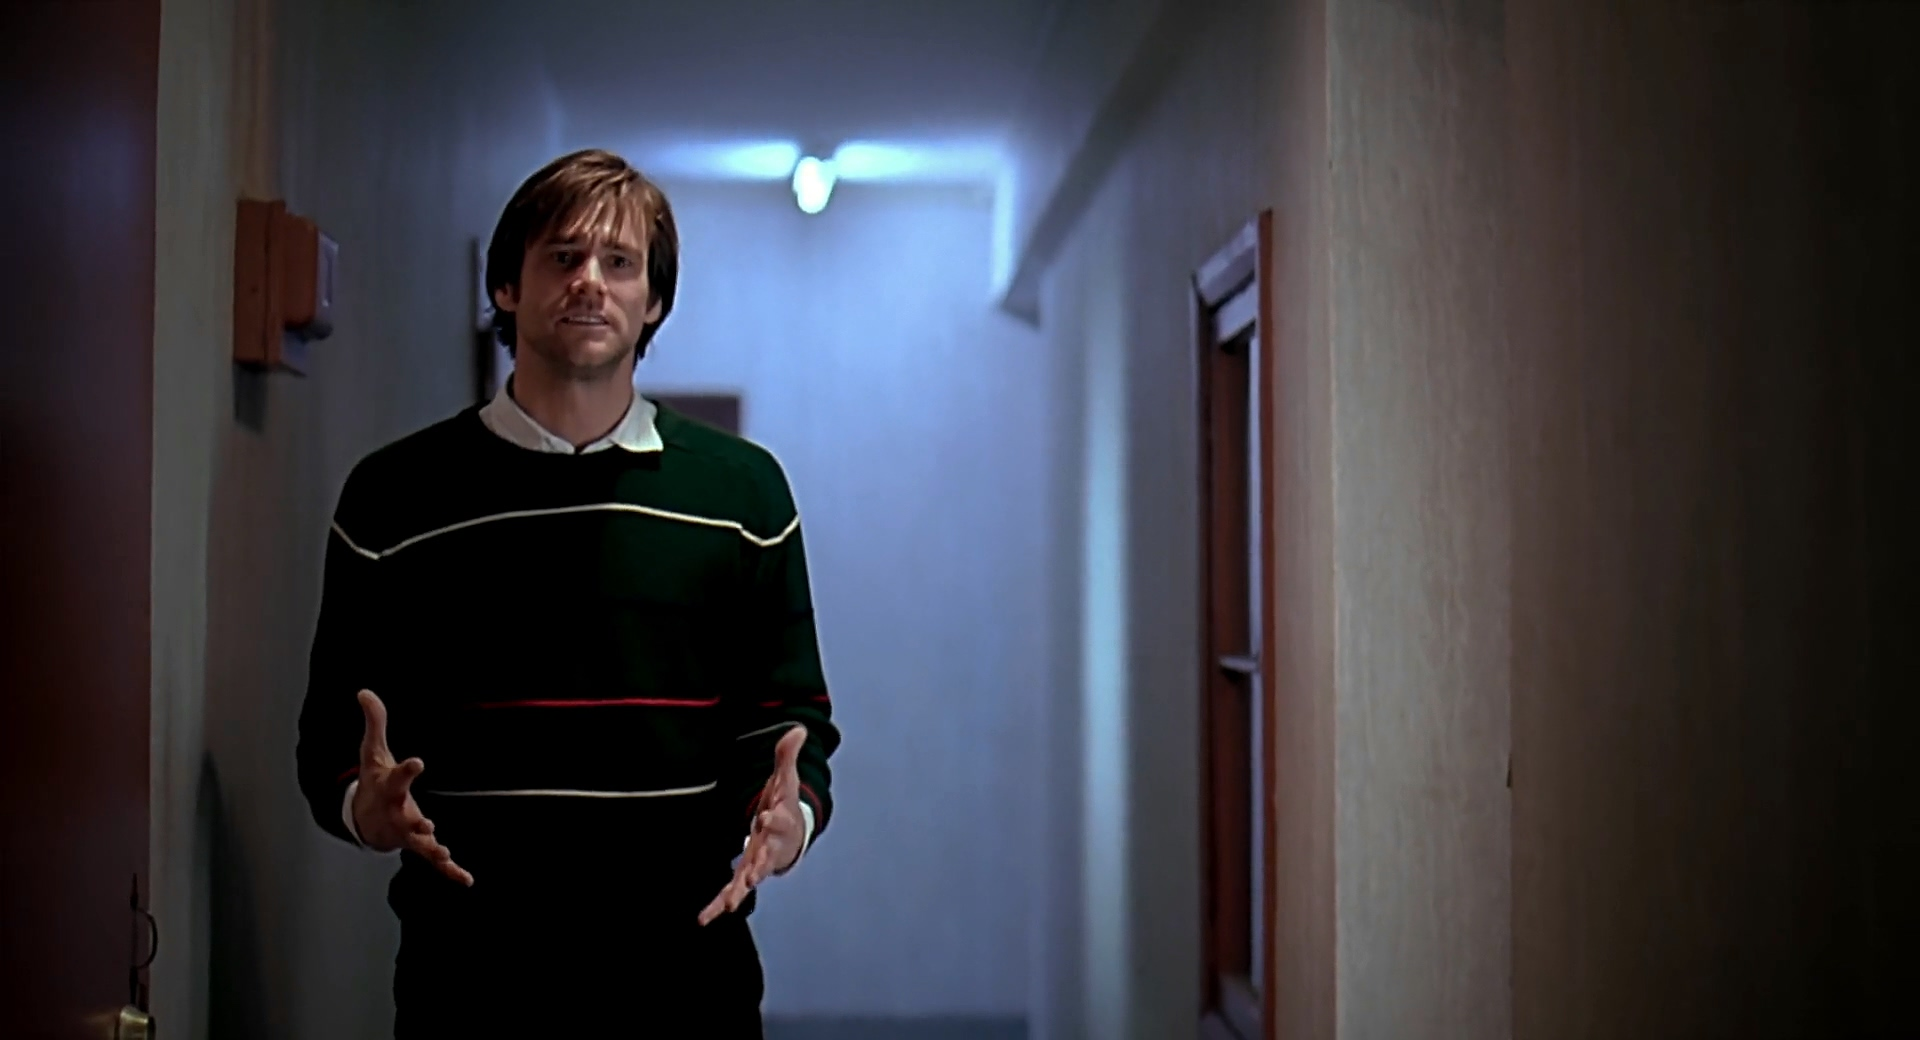 Jim Carrey in Eternal Sunshine of the Spotless Mind (2004)